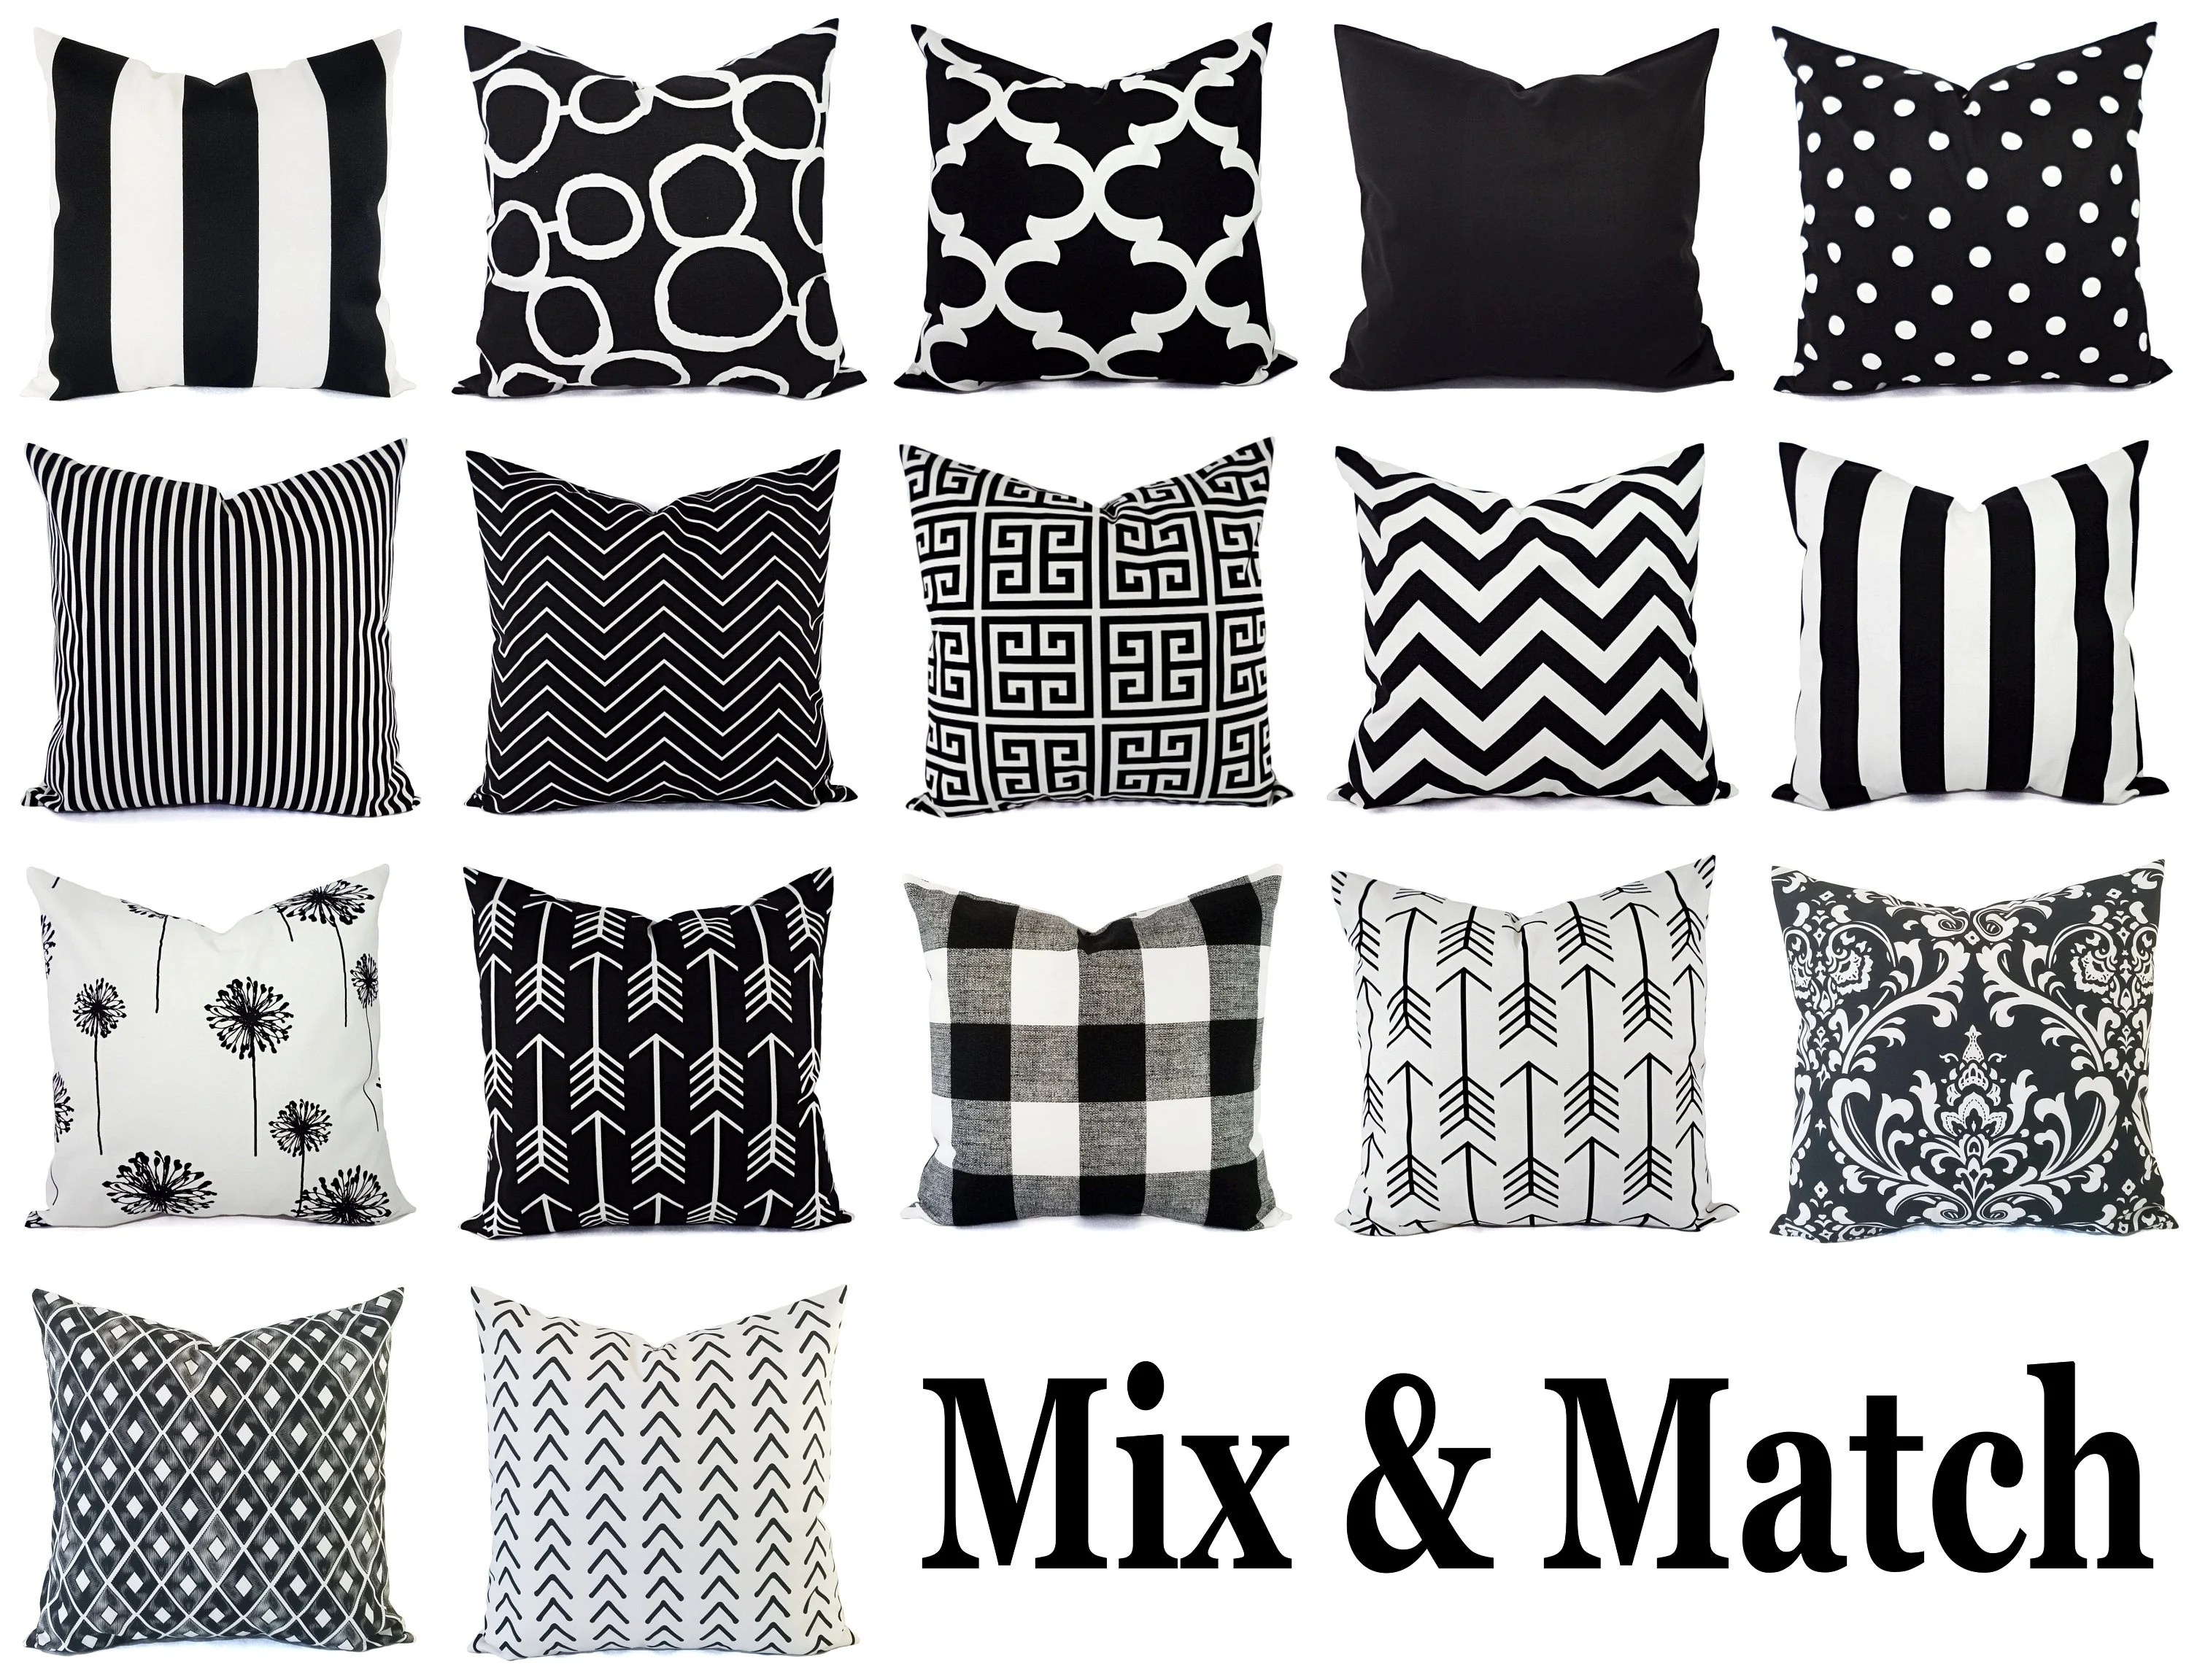 black pillow covers black and white pillows black accent pillow black pillow sham couch pillow white pillow cover black pillows